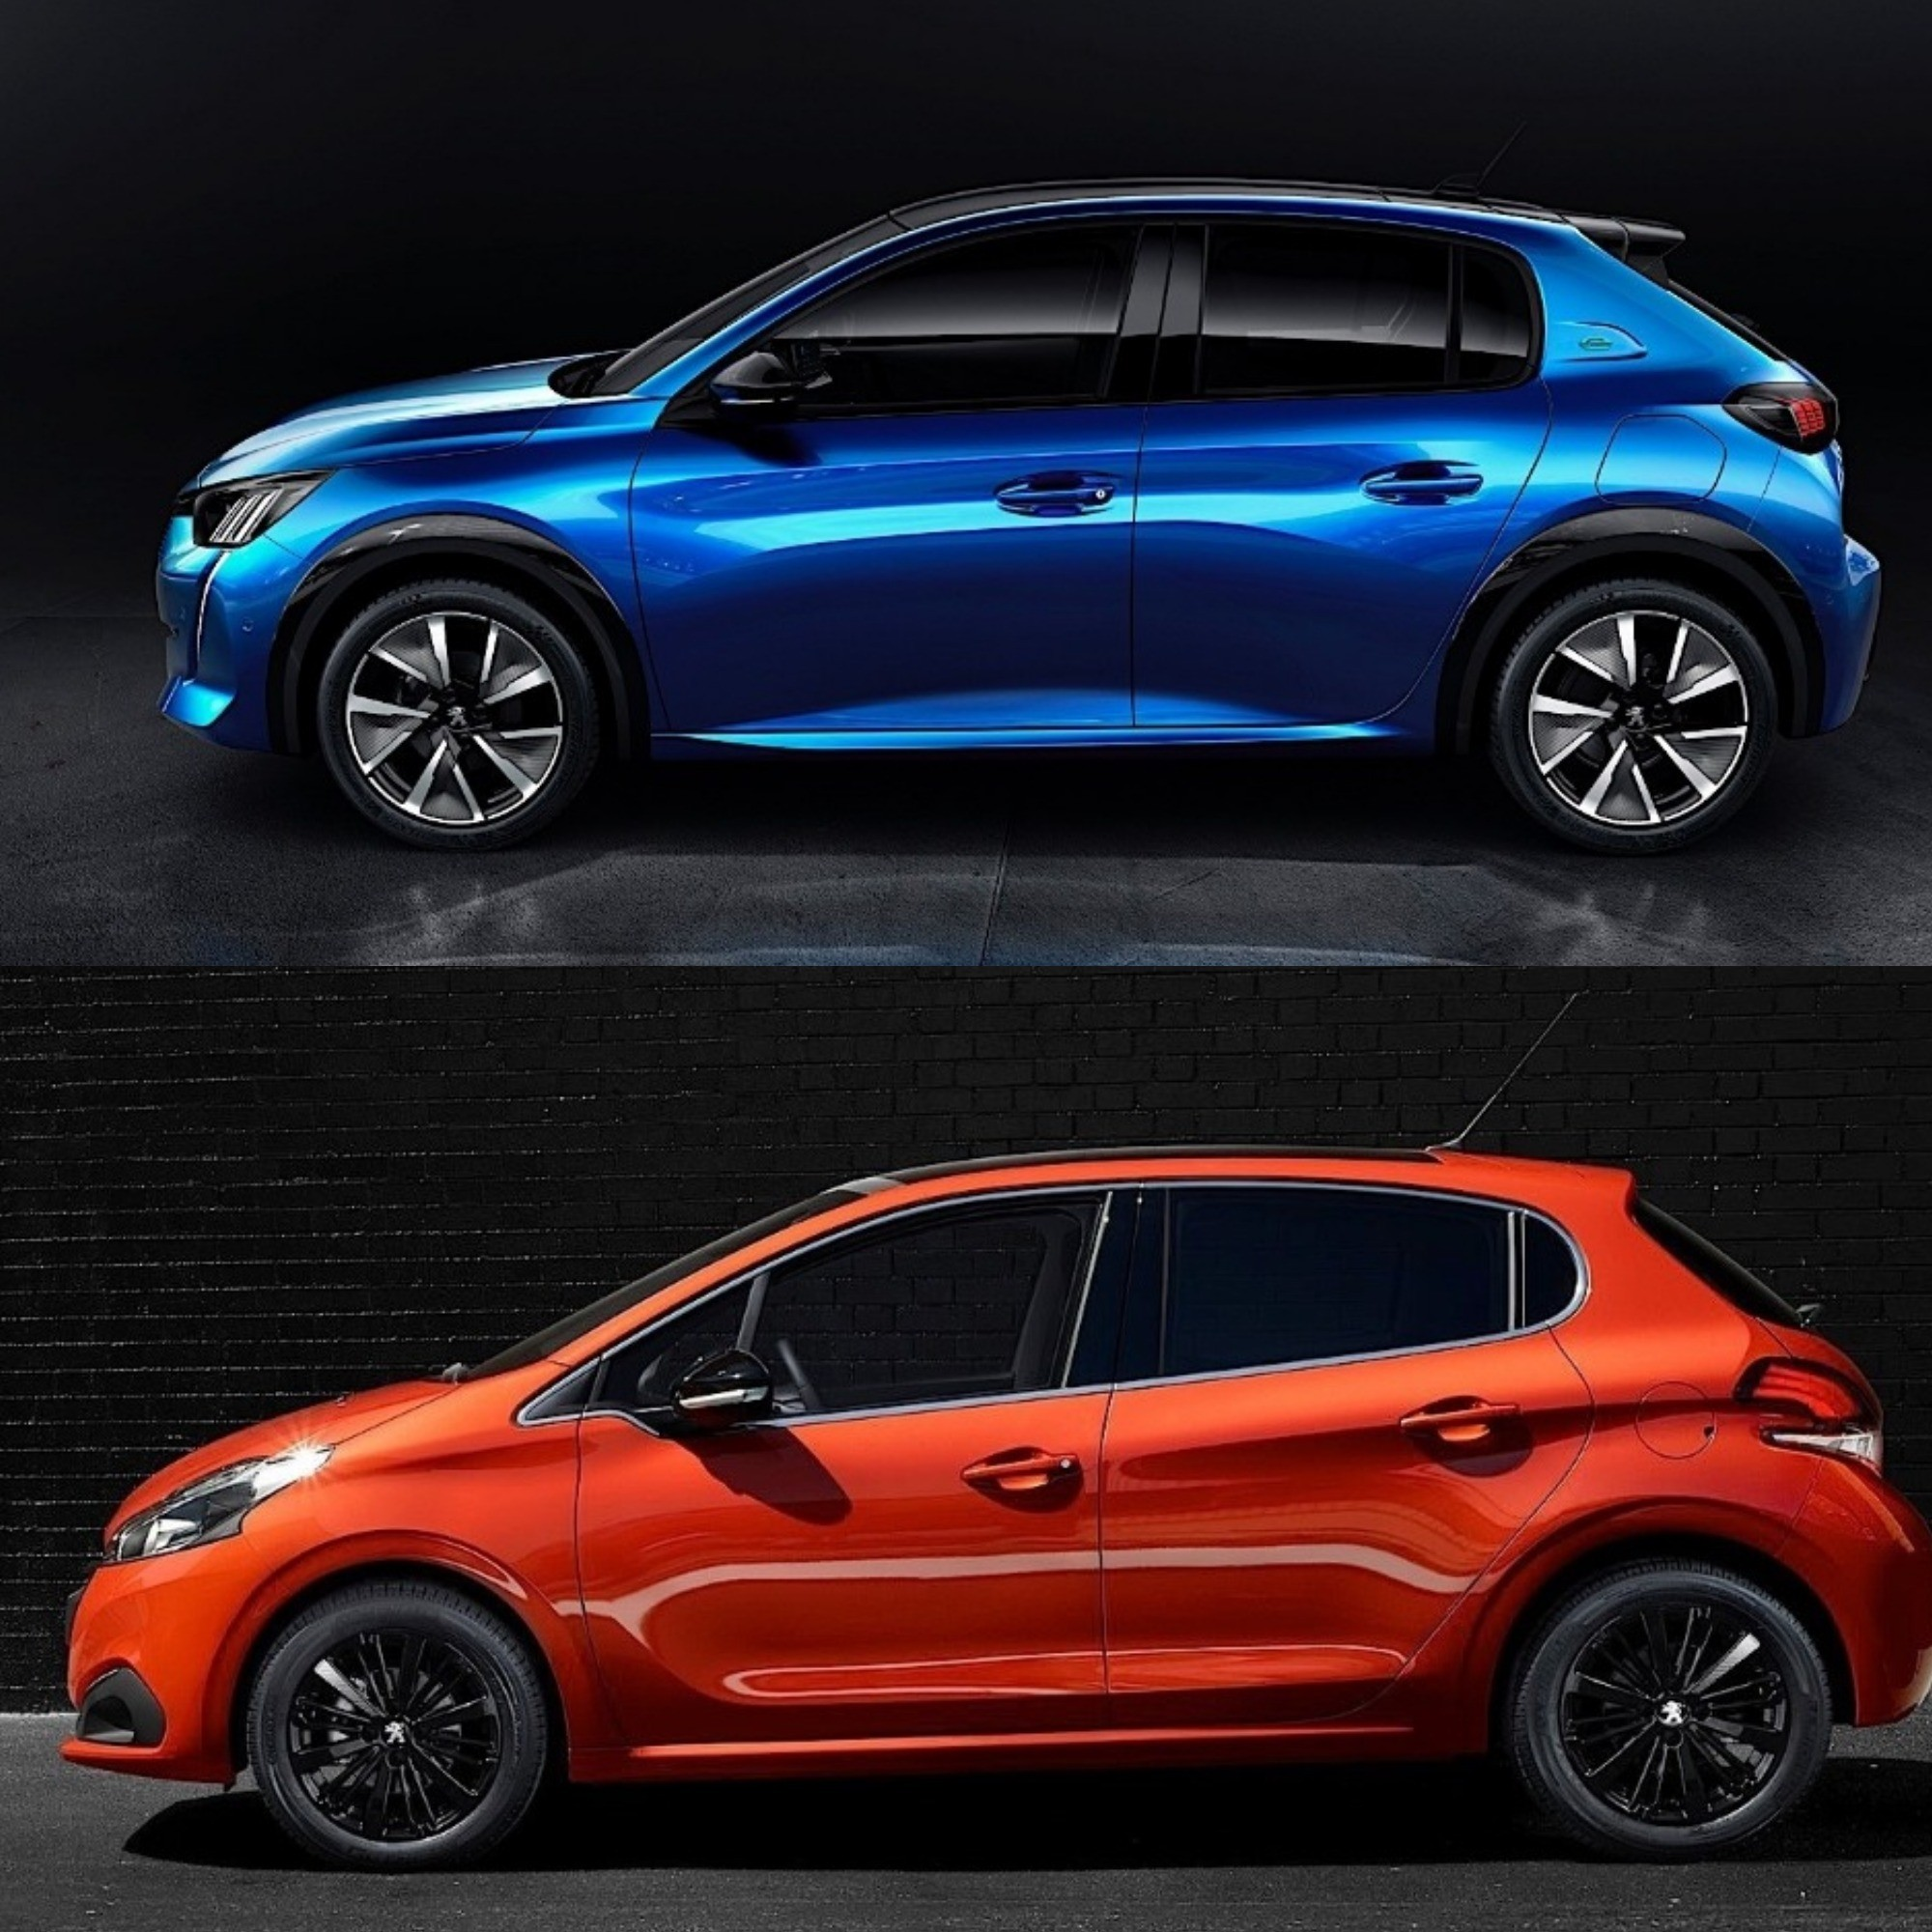 2020 Peugeot 208 Rendering Is a Cute Polo Alternative ...